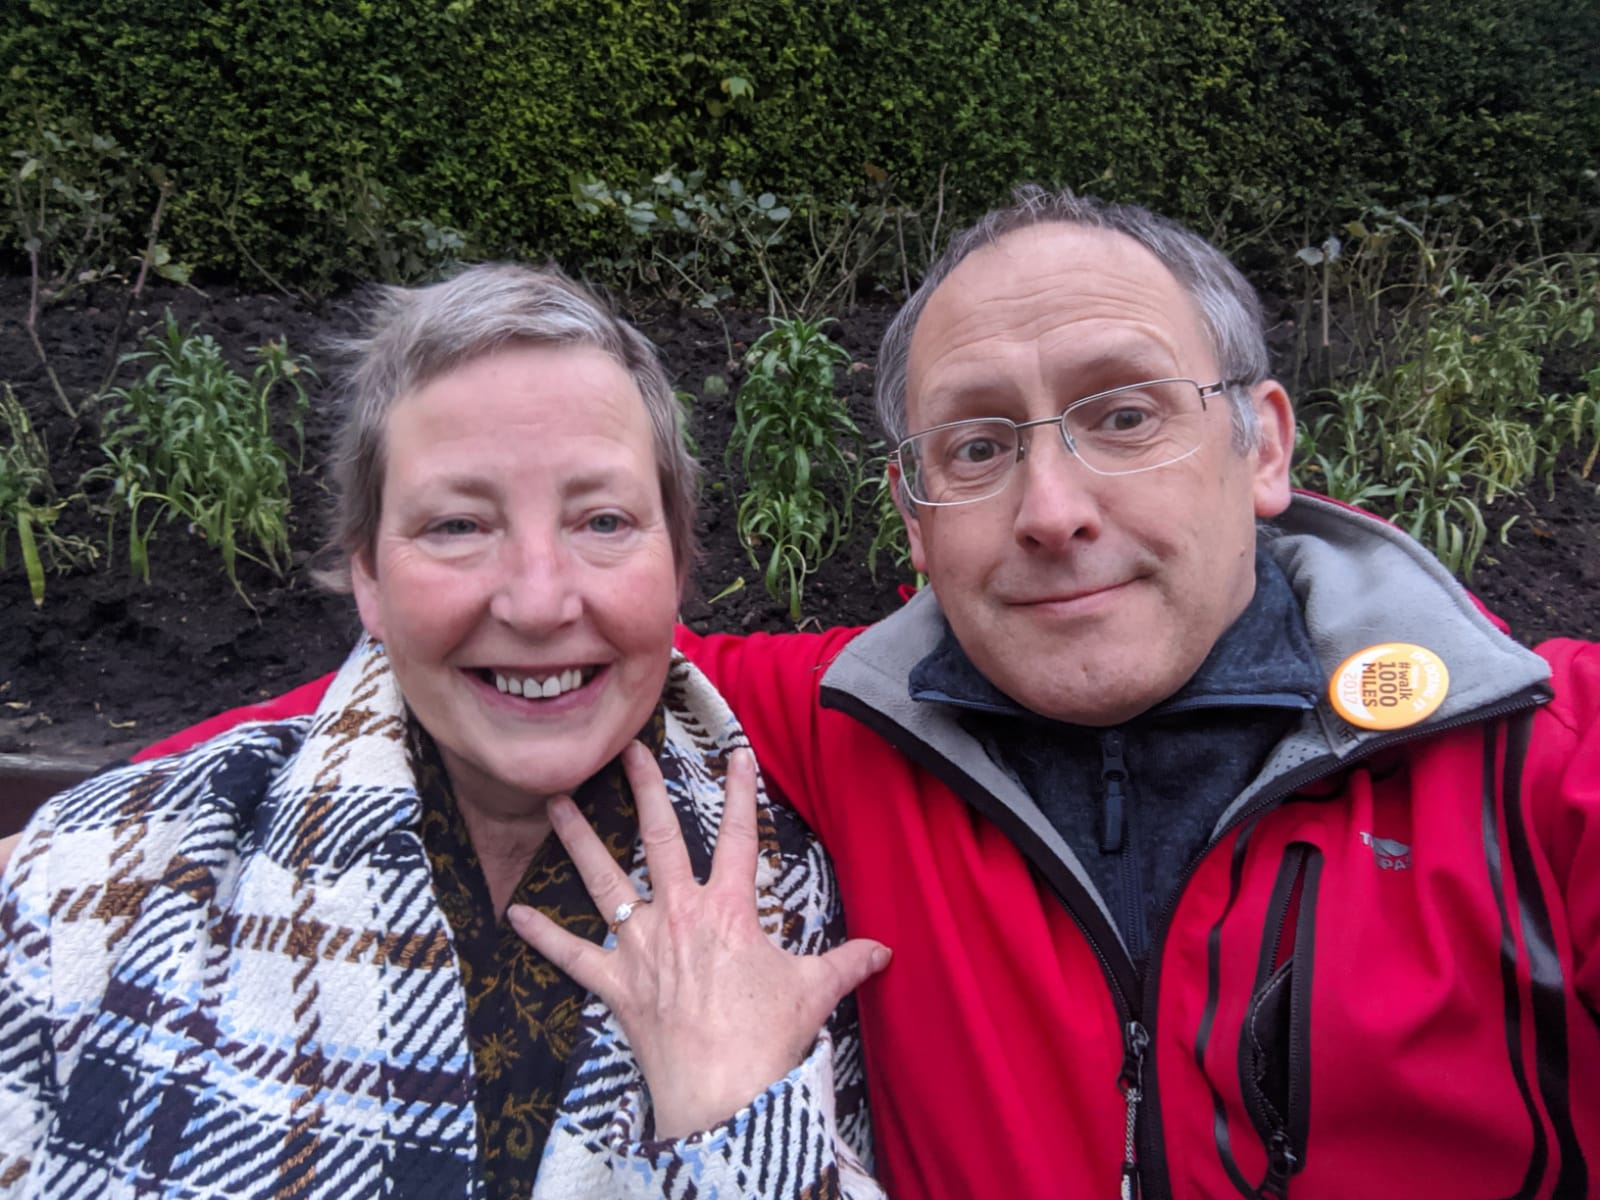 Sarah Ambler and Ian Pegg when they became engaged in November.